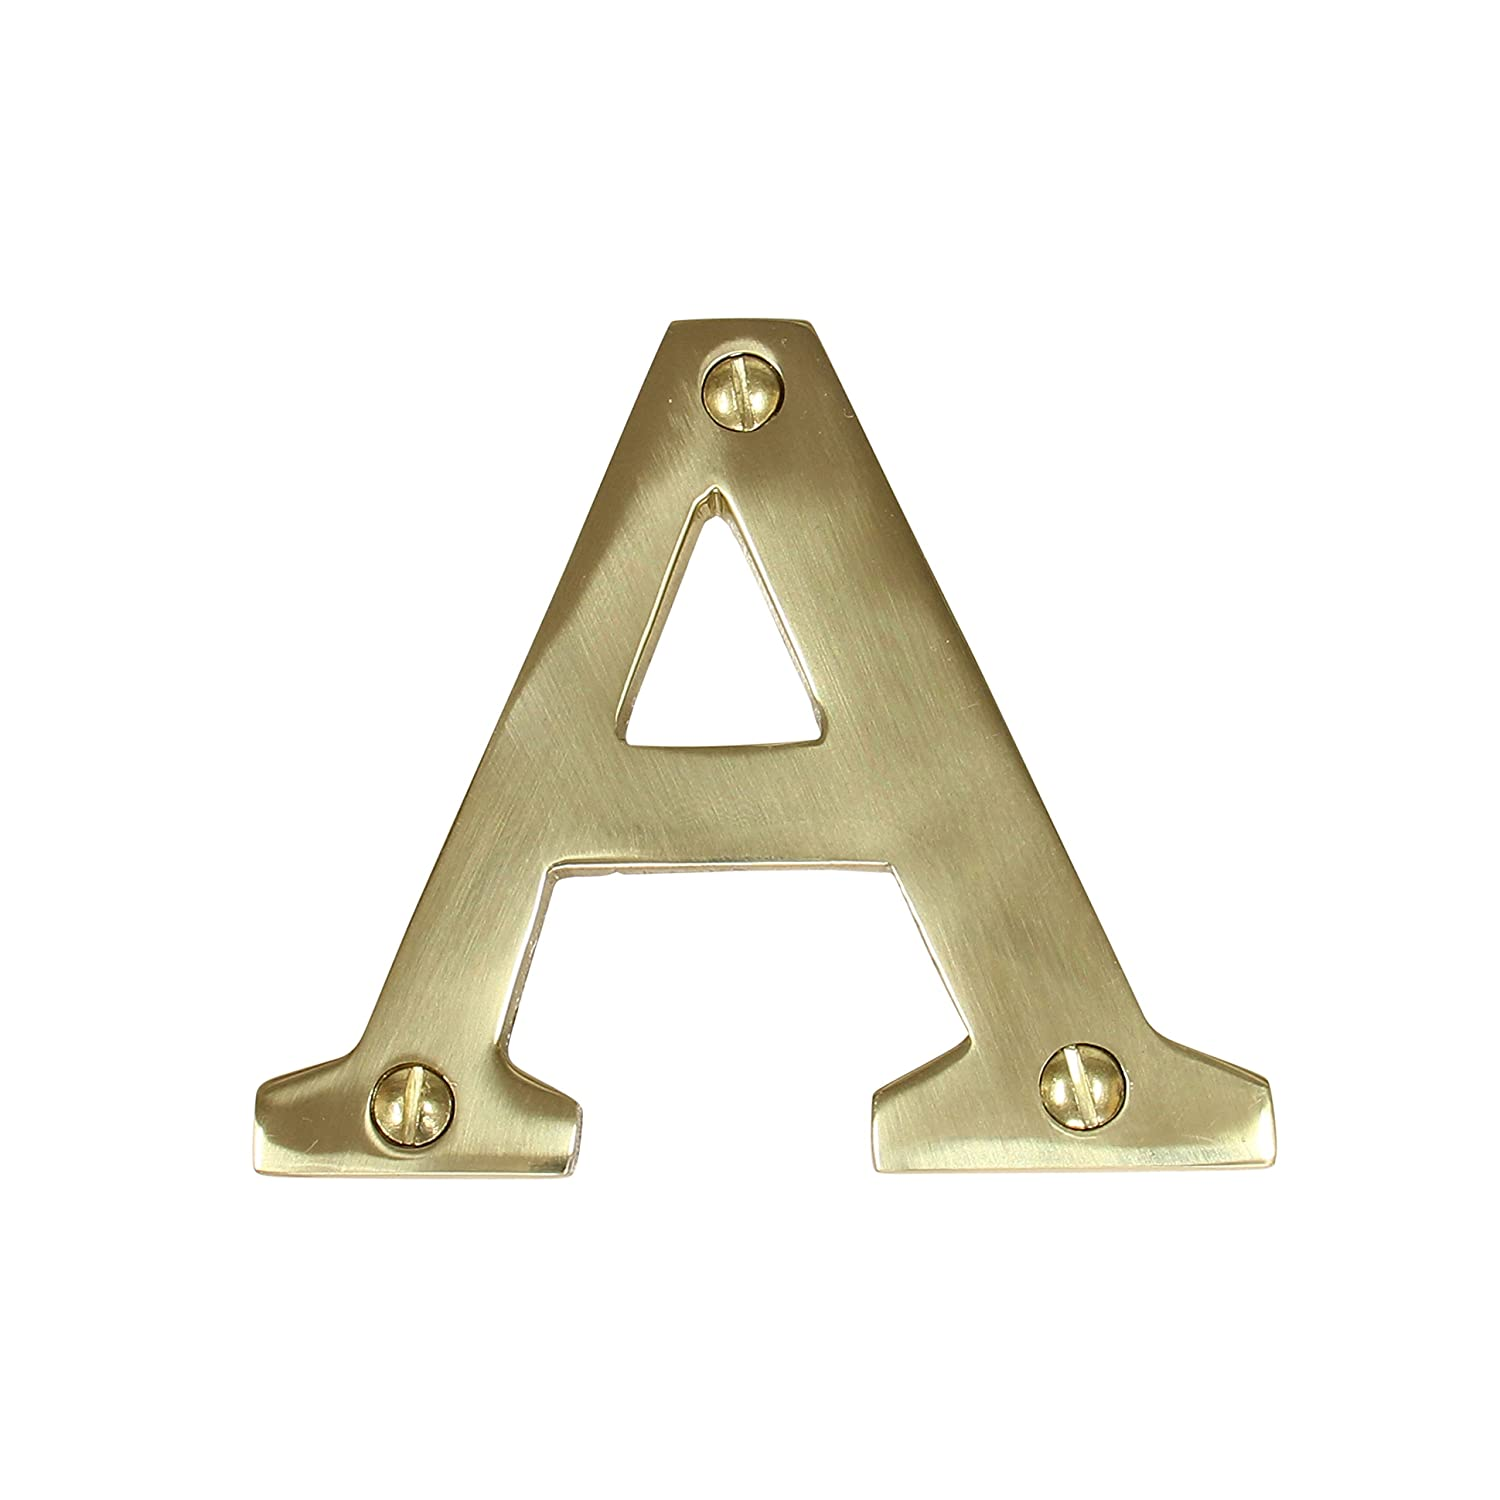 RCH Hardware Solid Brass 3' Tall House Letter B, Polished Brass Shiny Gold Matching Screws Included RCH Supply Company 2350B-PB075